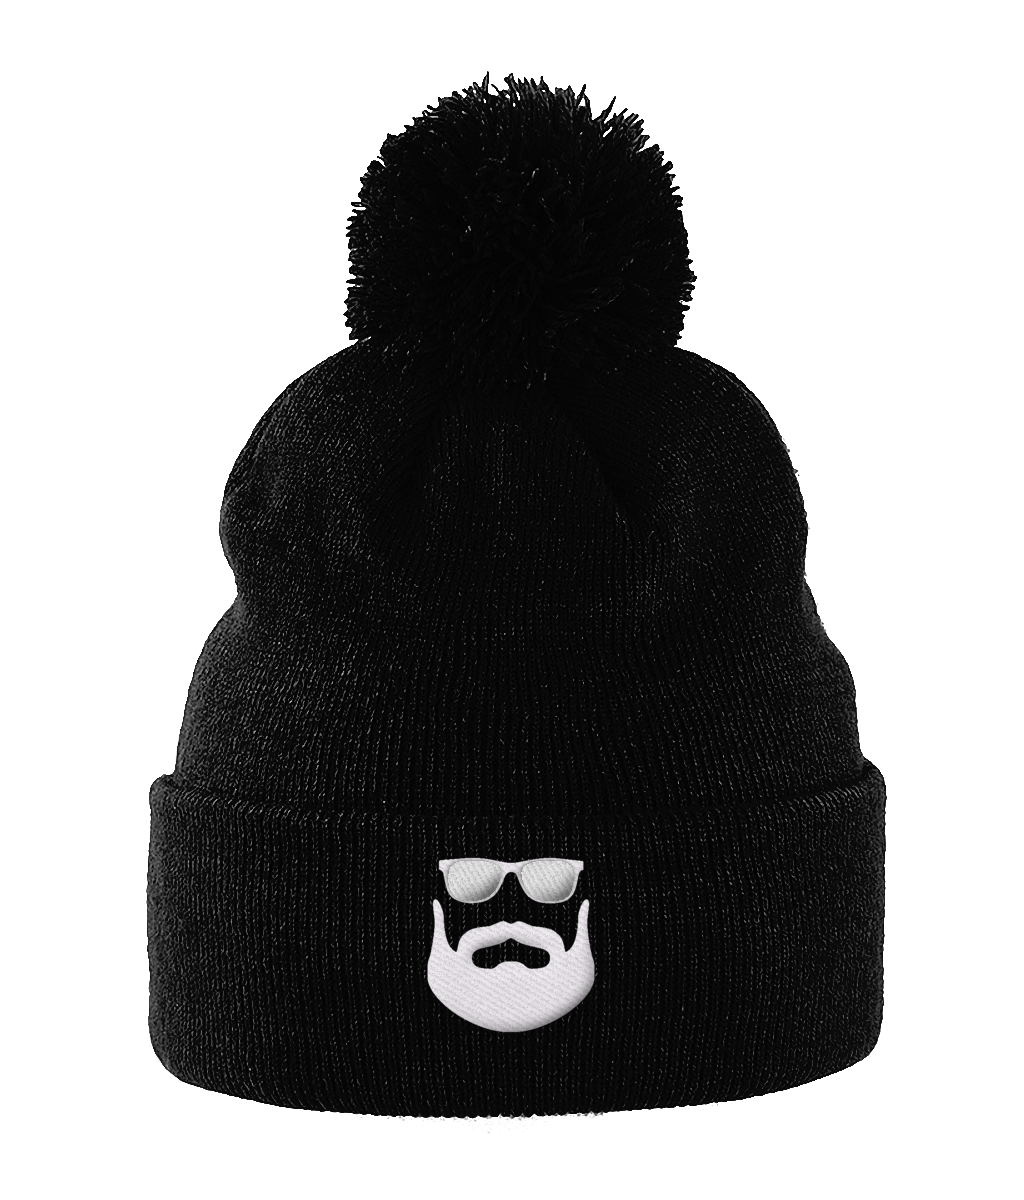 The Boot Camper Bobble Hat